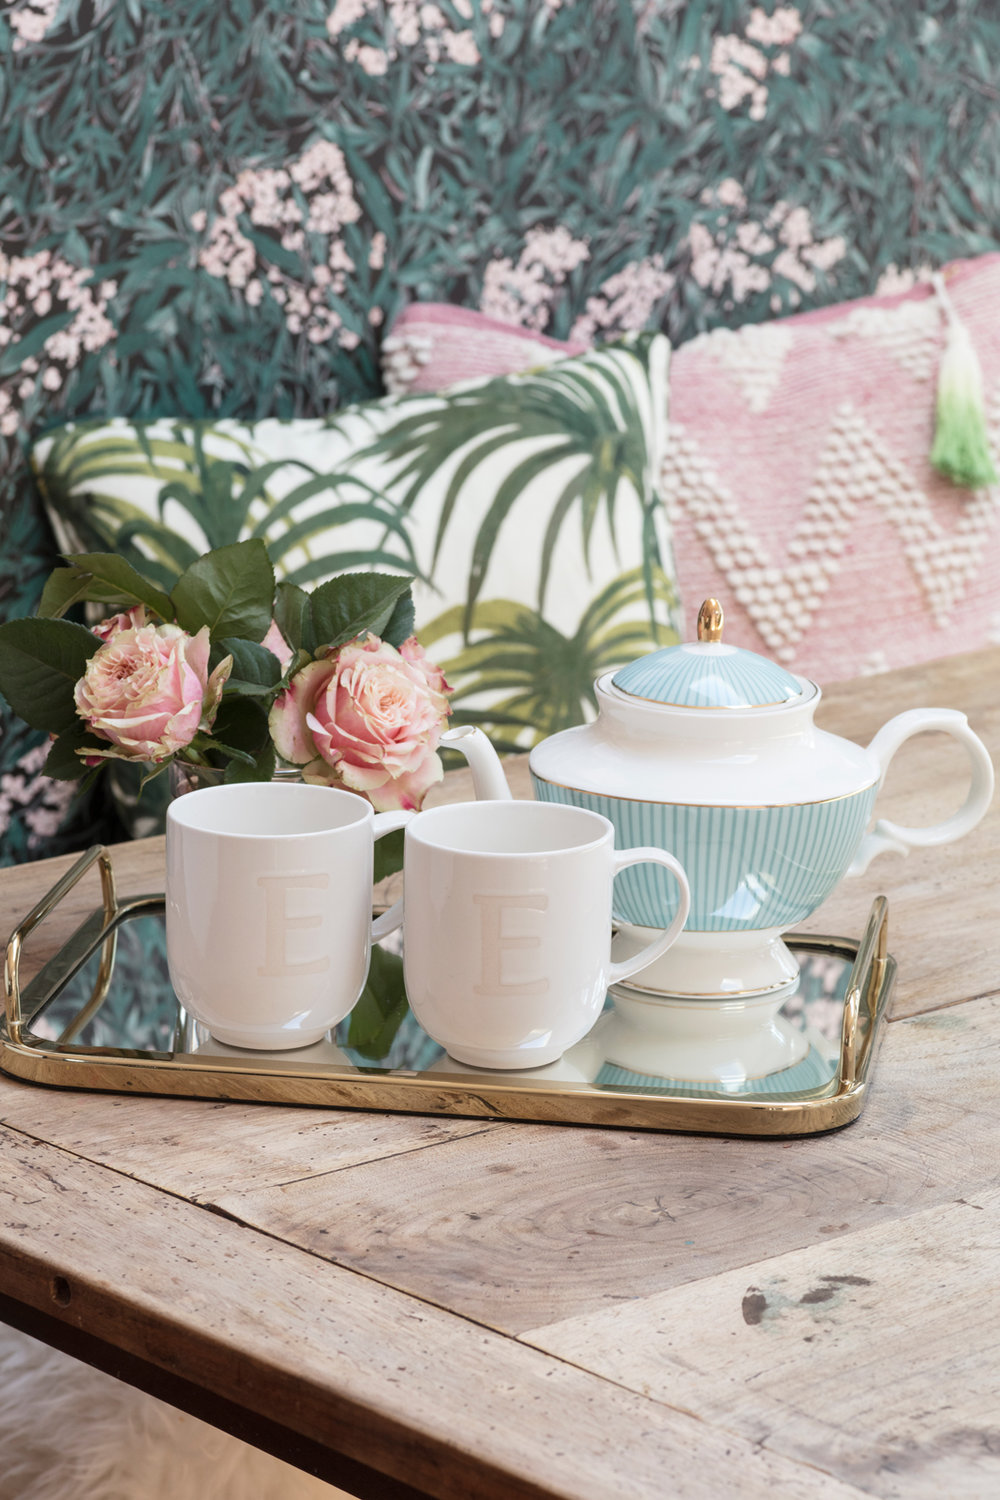 Pretty afternoon tea with initialled mugs and duck egg blue teapot and pink peony roses